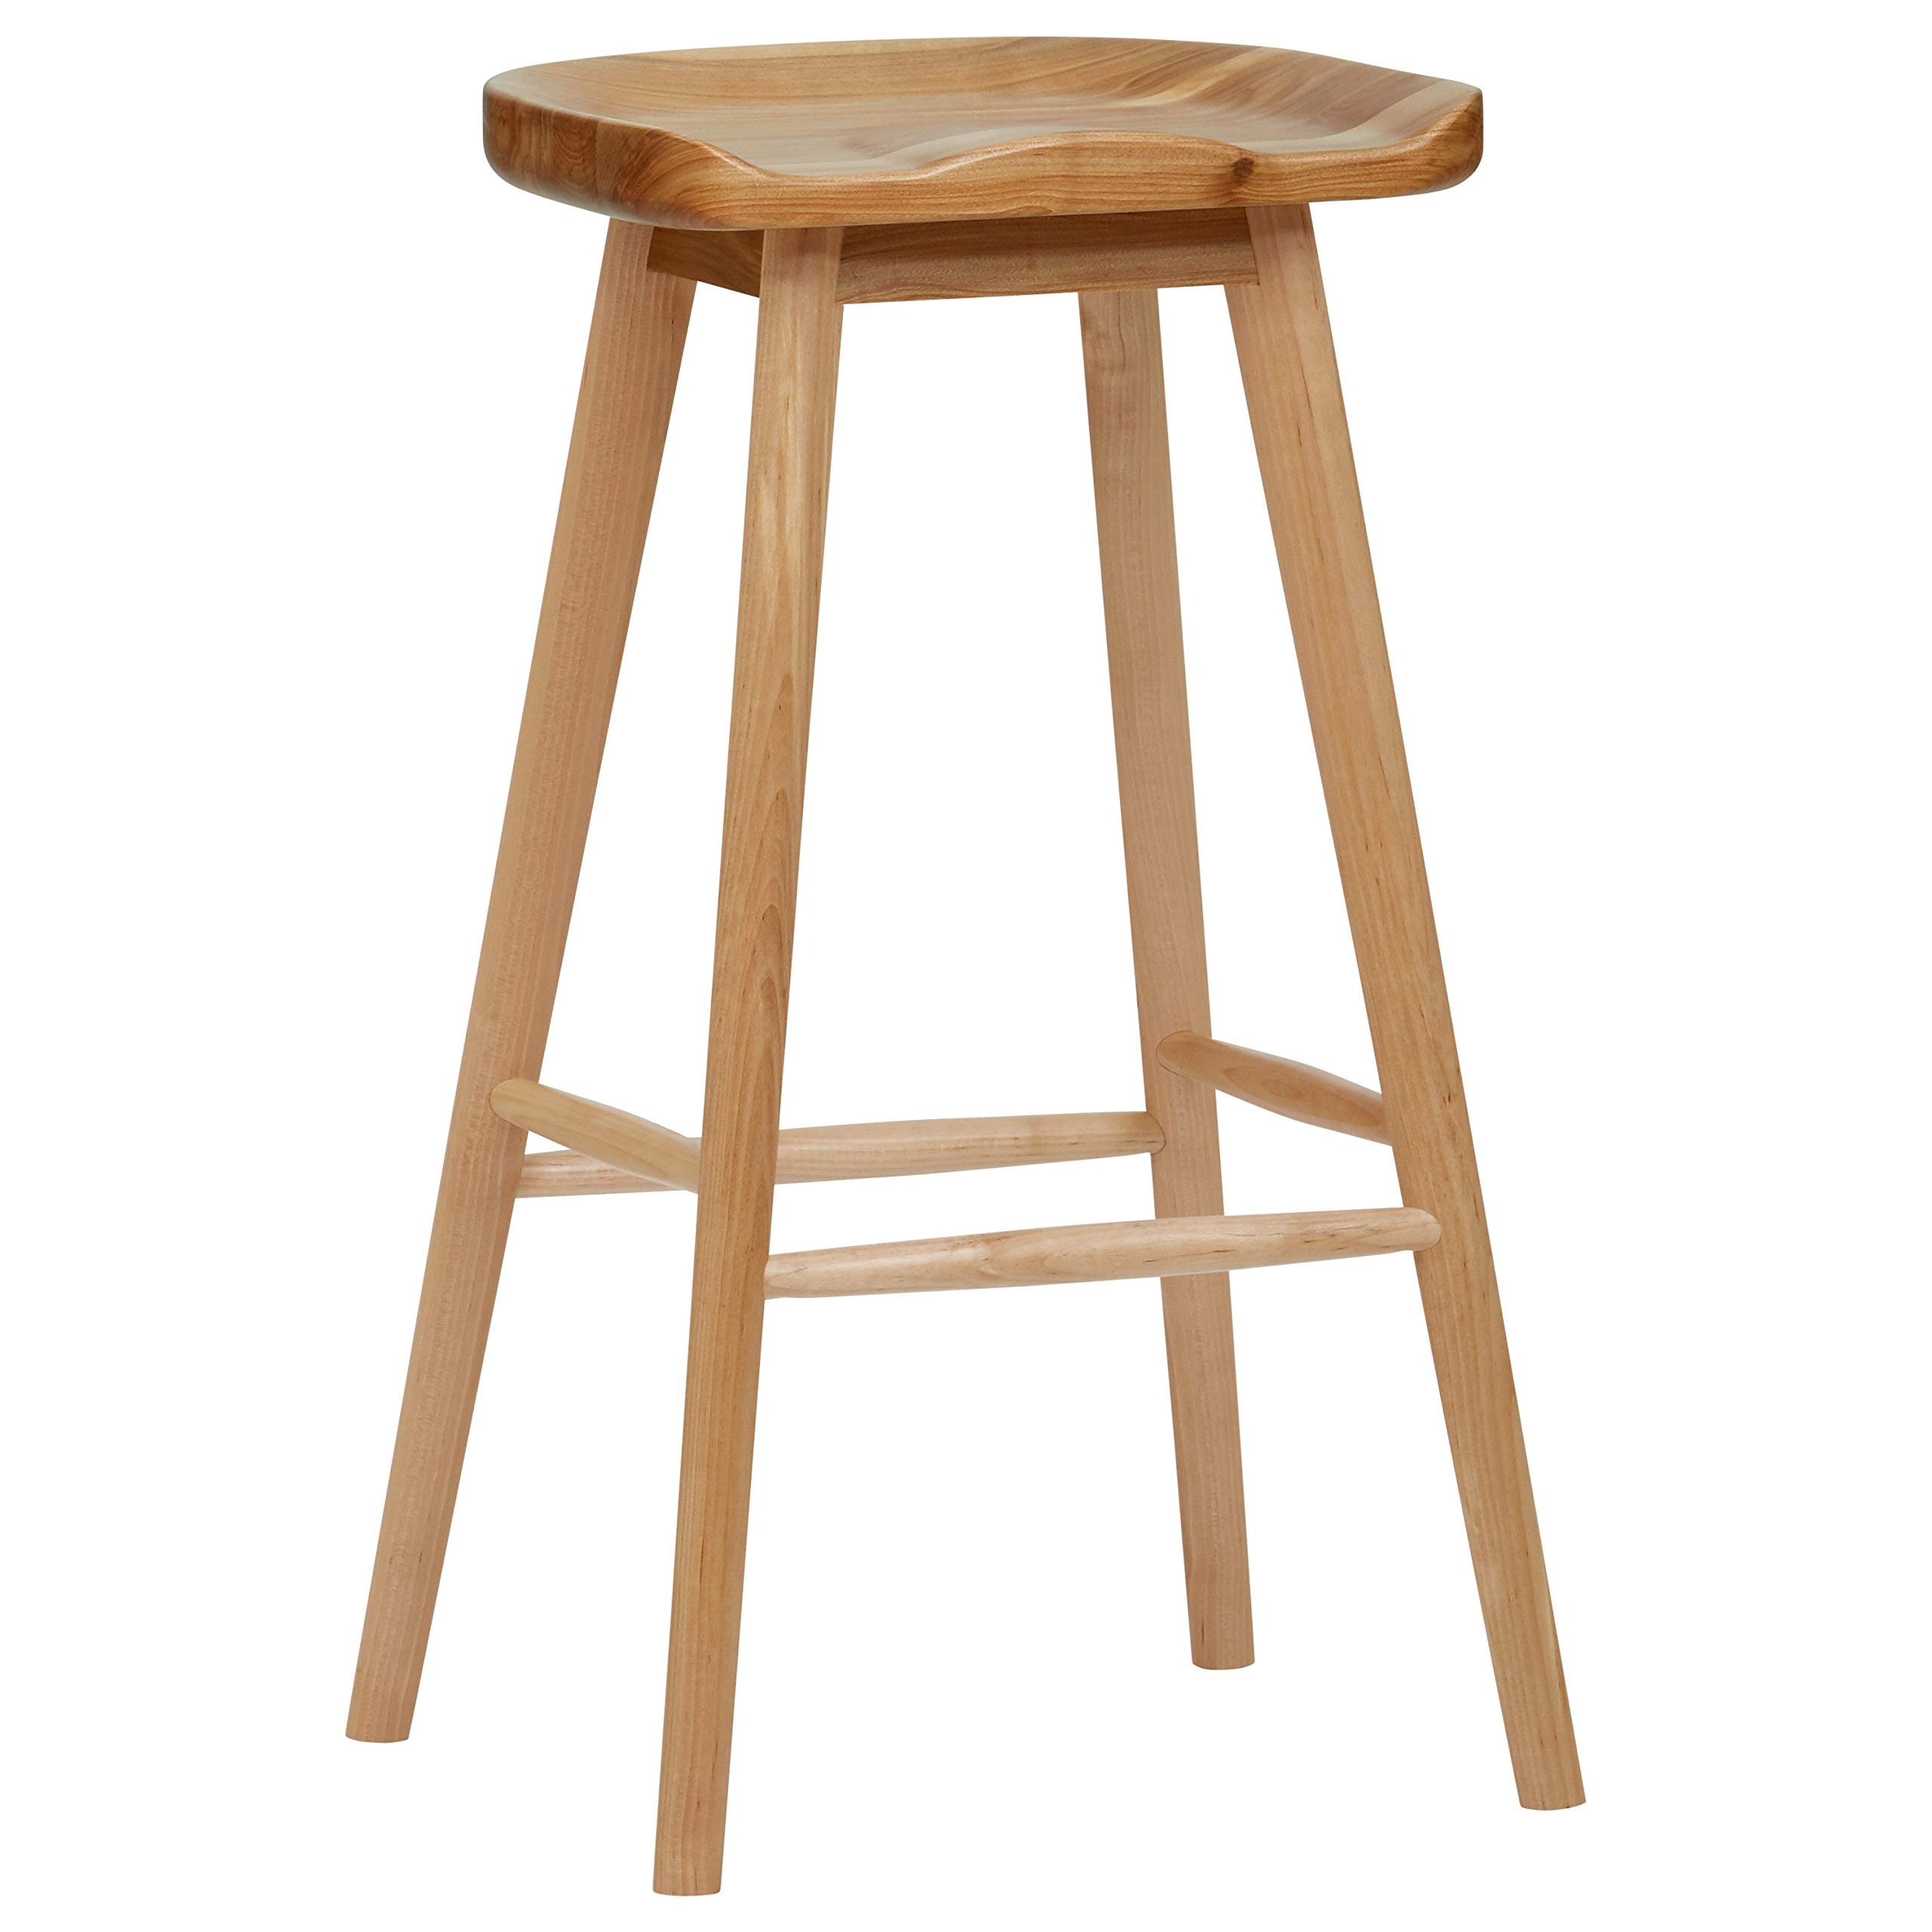 Rivet Modern Wood Counter Barstool, 29.5 Inch Height, Natural Color by Rivet